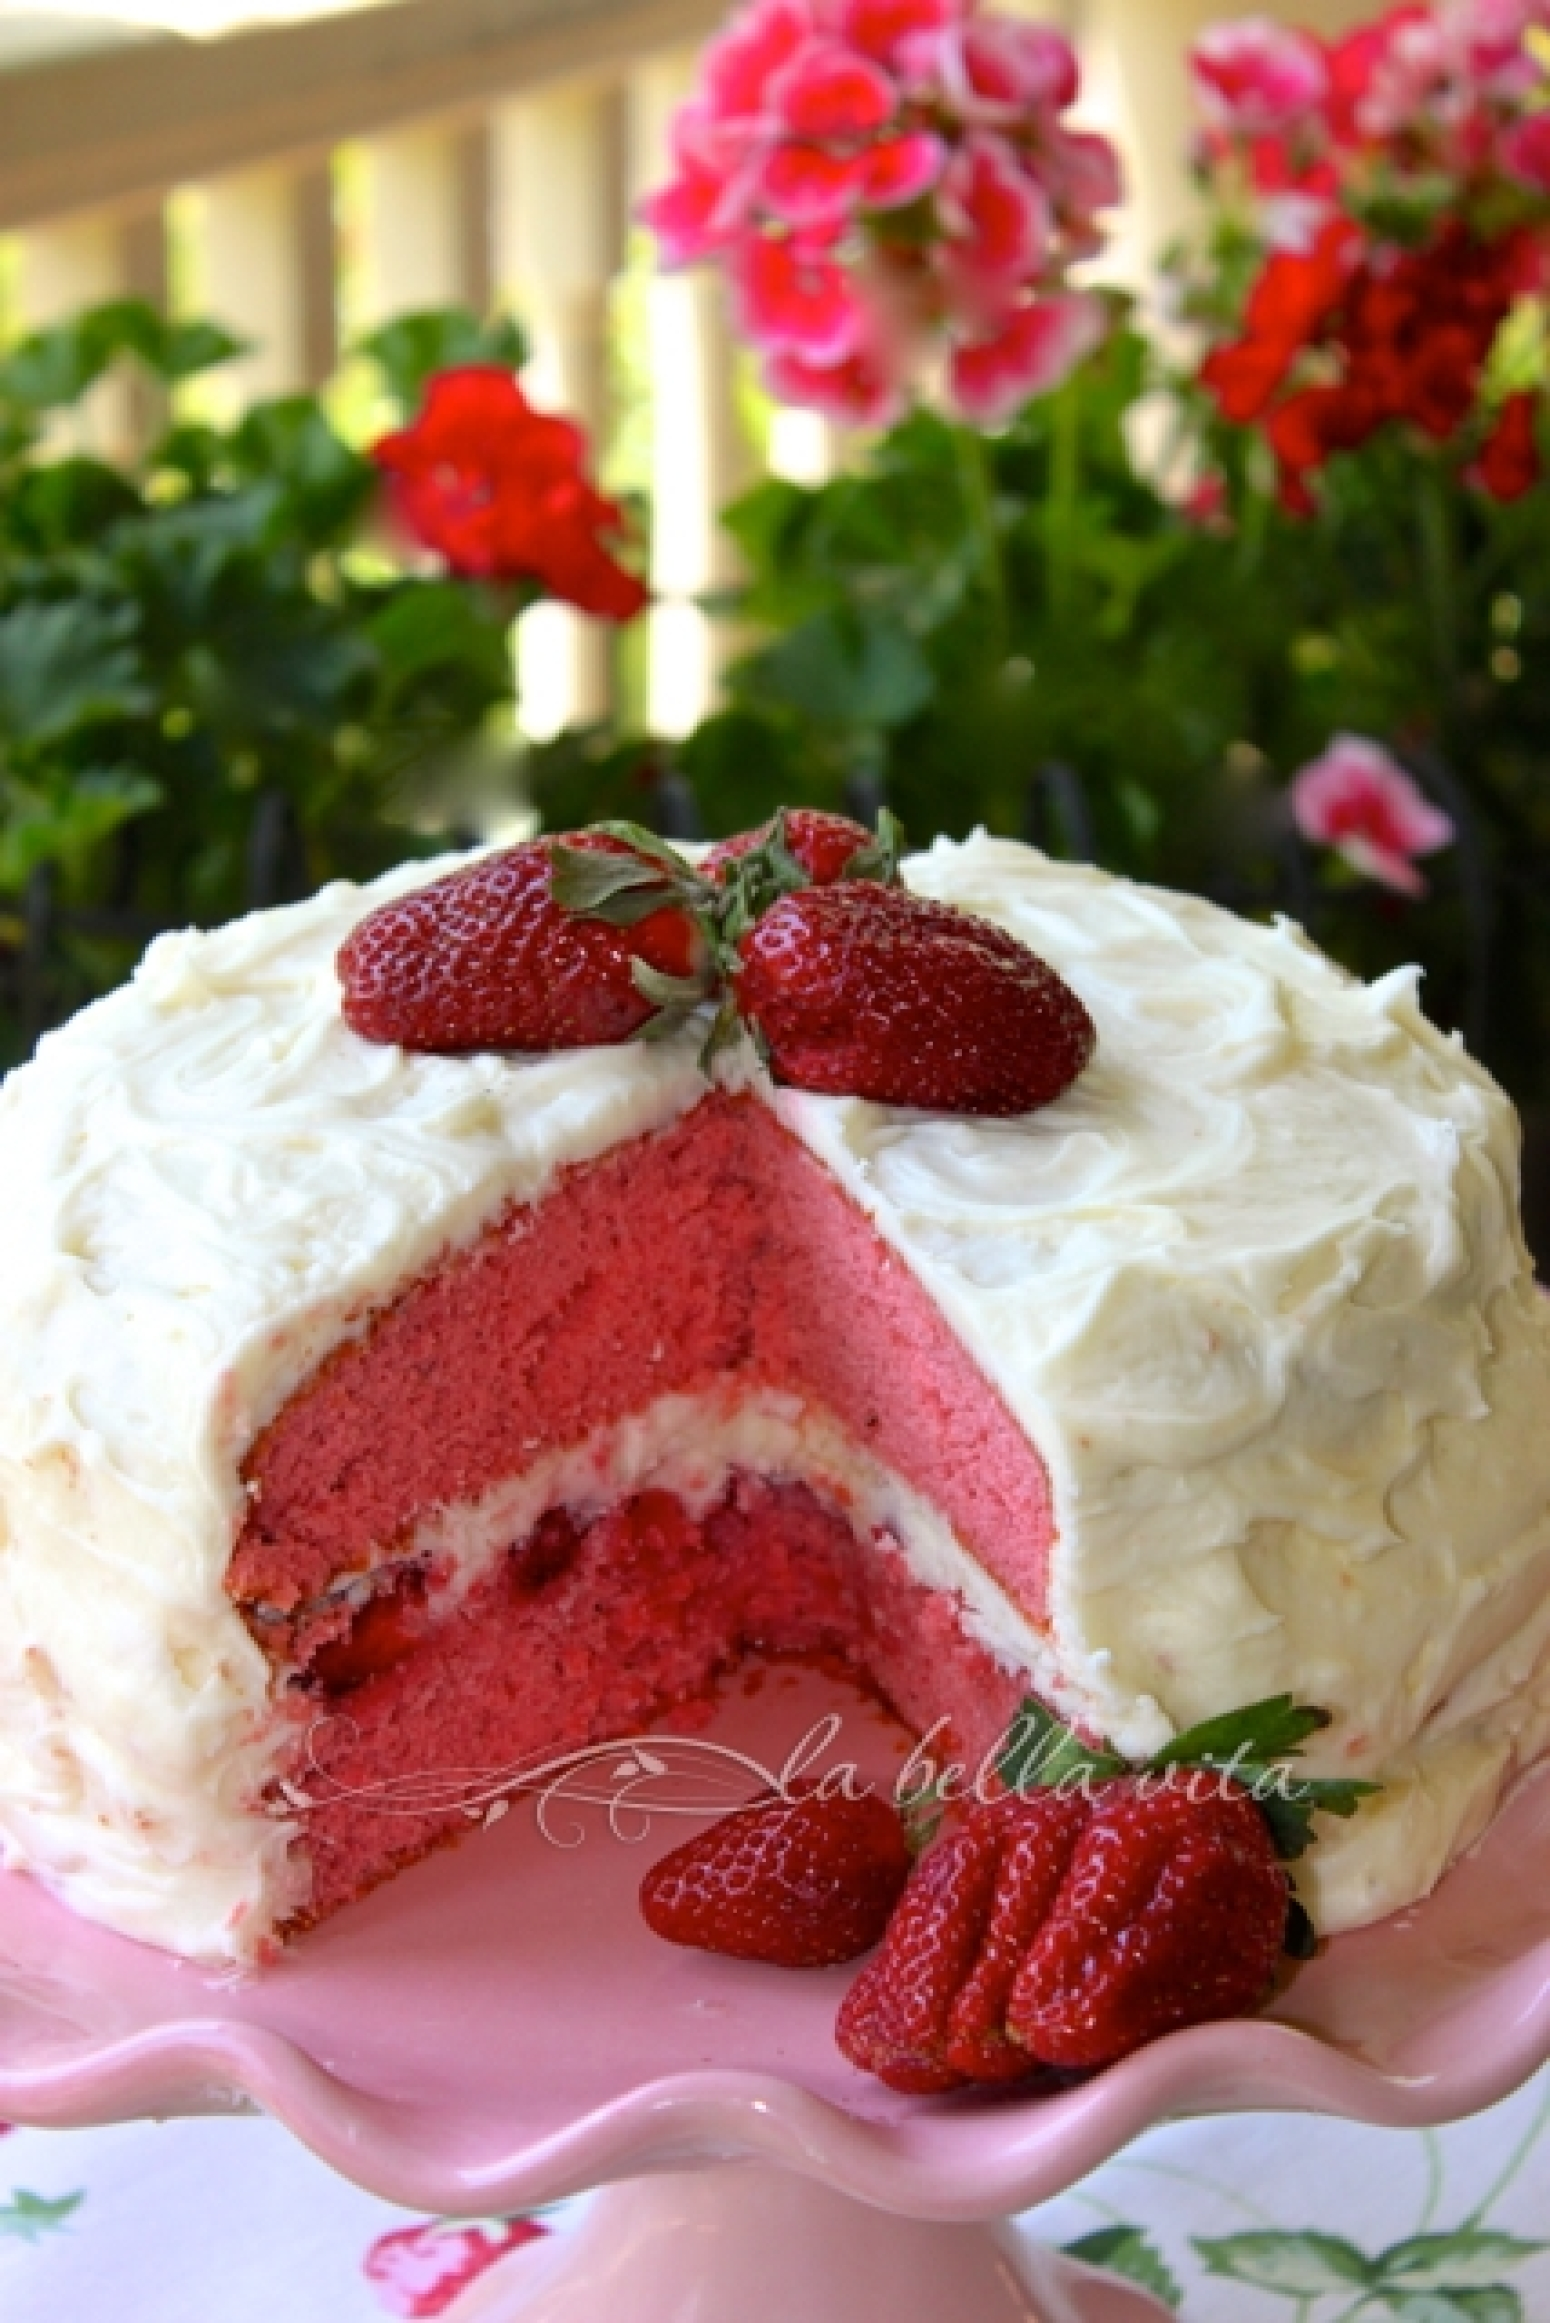 Images Of Strawberry Layer Cake : Strawberry Layer Cake & Sweet Mascarpone Cheese Icing ...